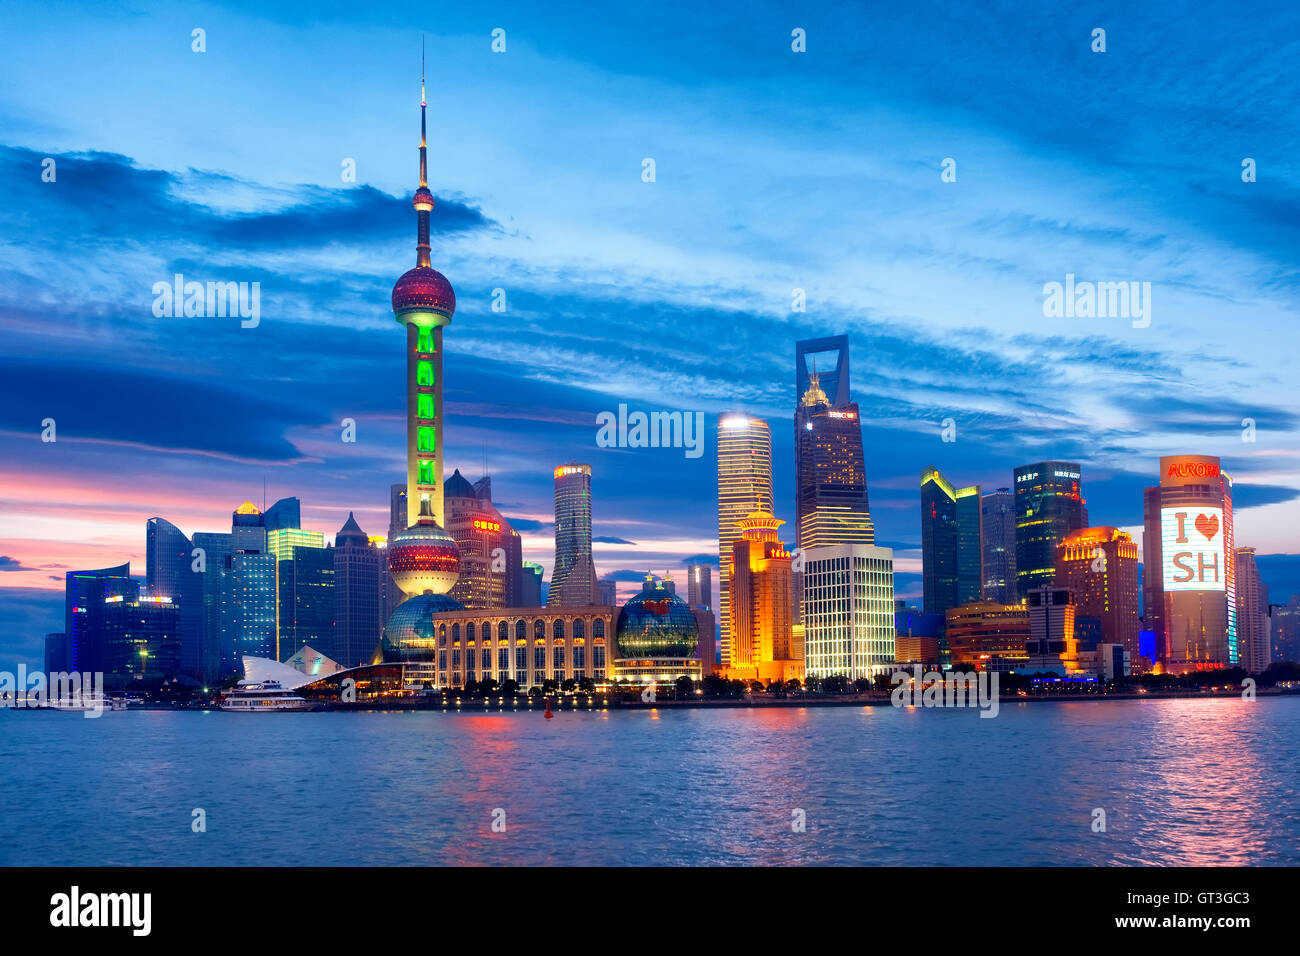 Pudong skyline at night in Shanghai - Stock Image